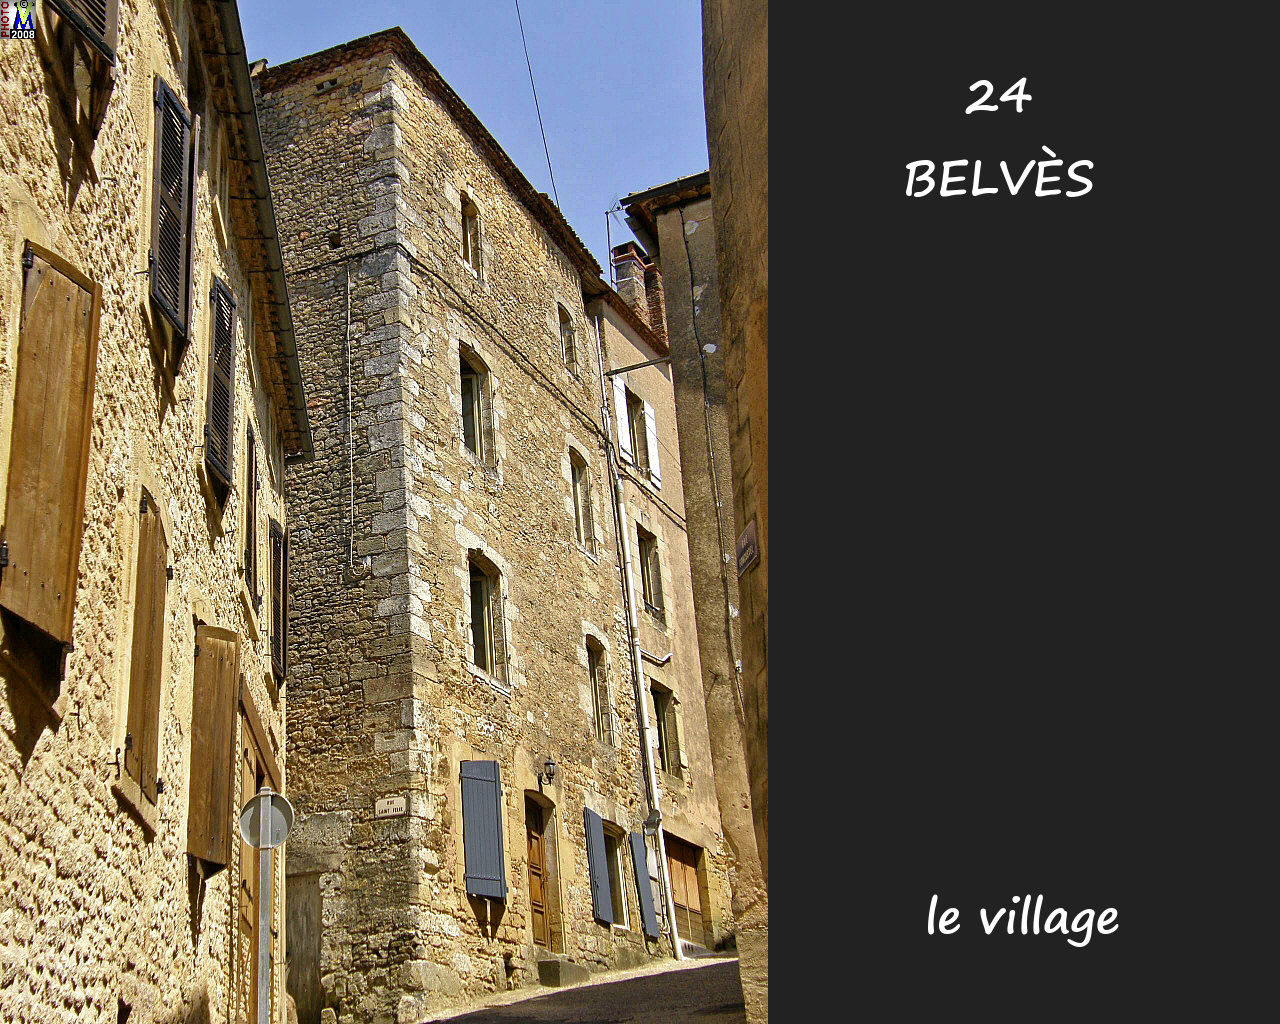 24BELVES_village_134.jpg